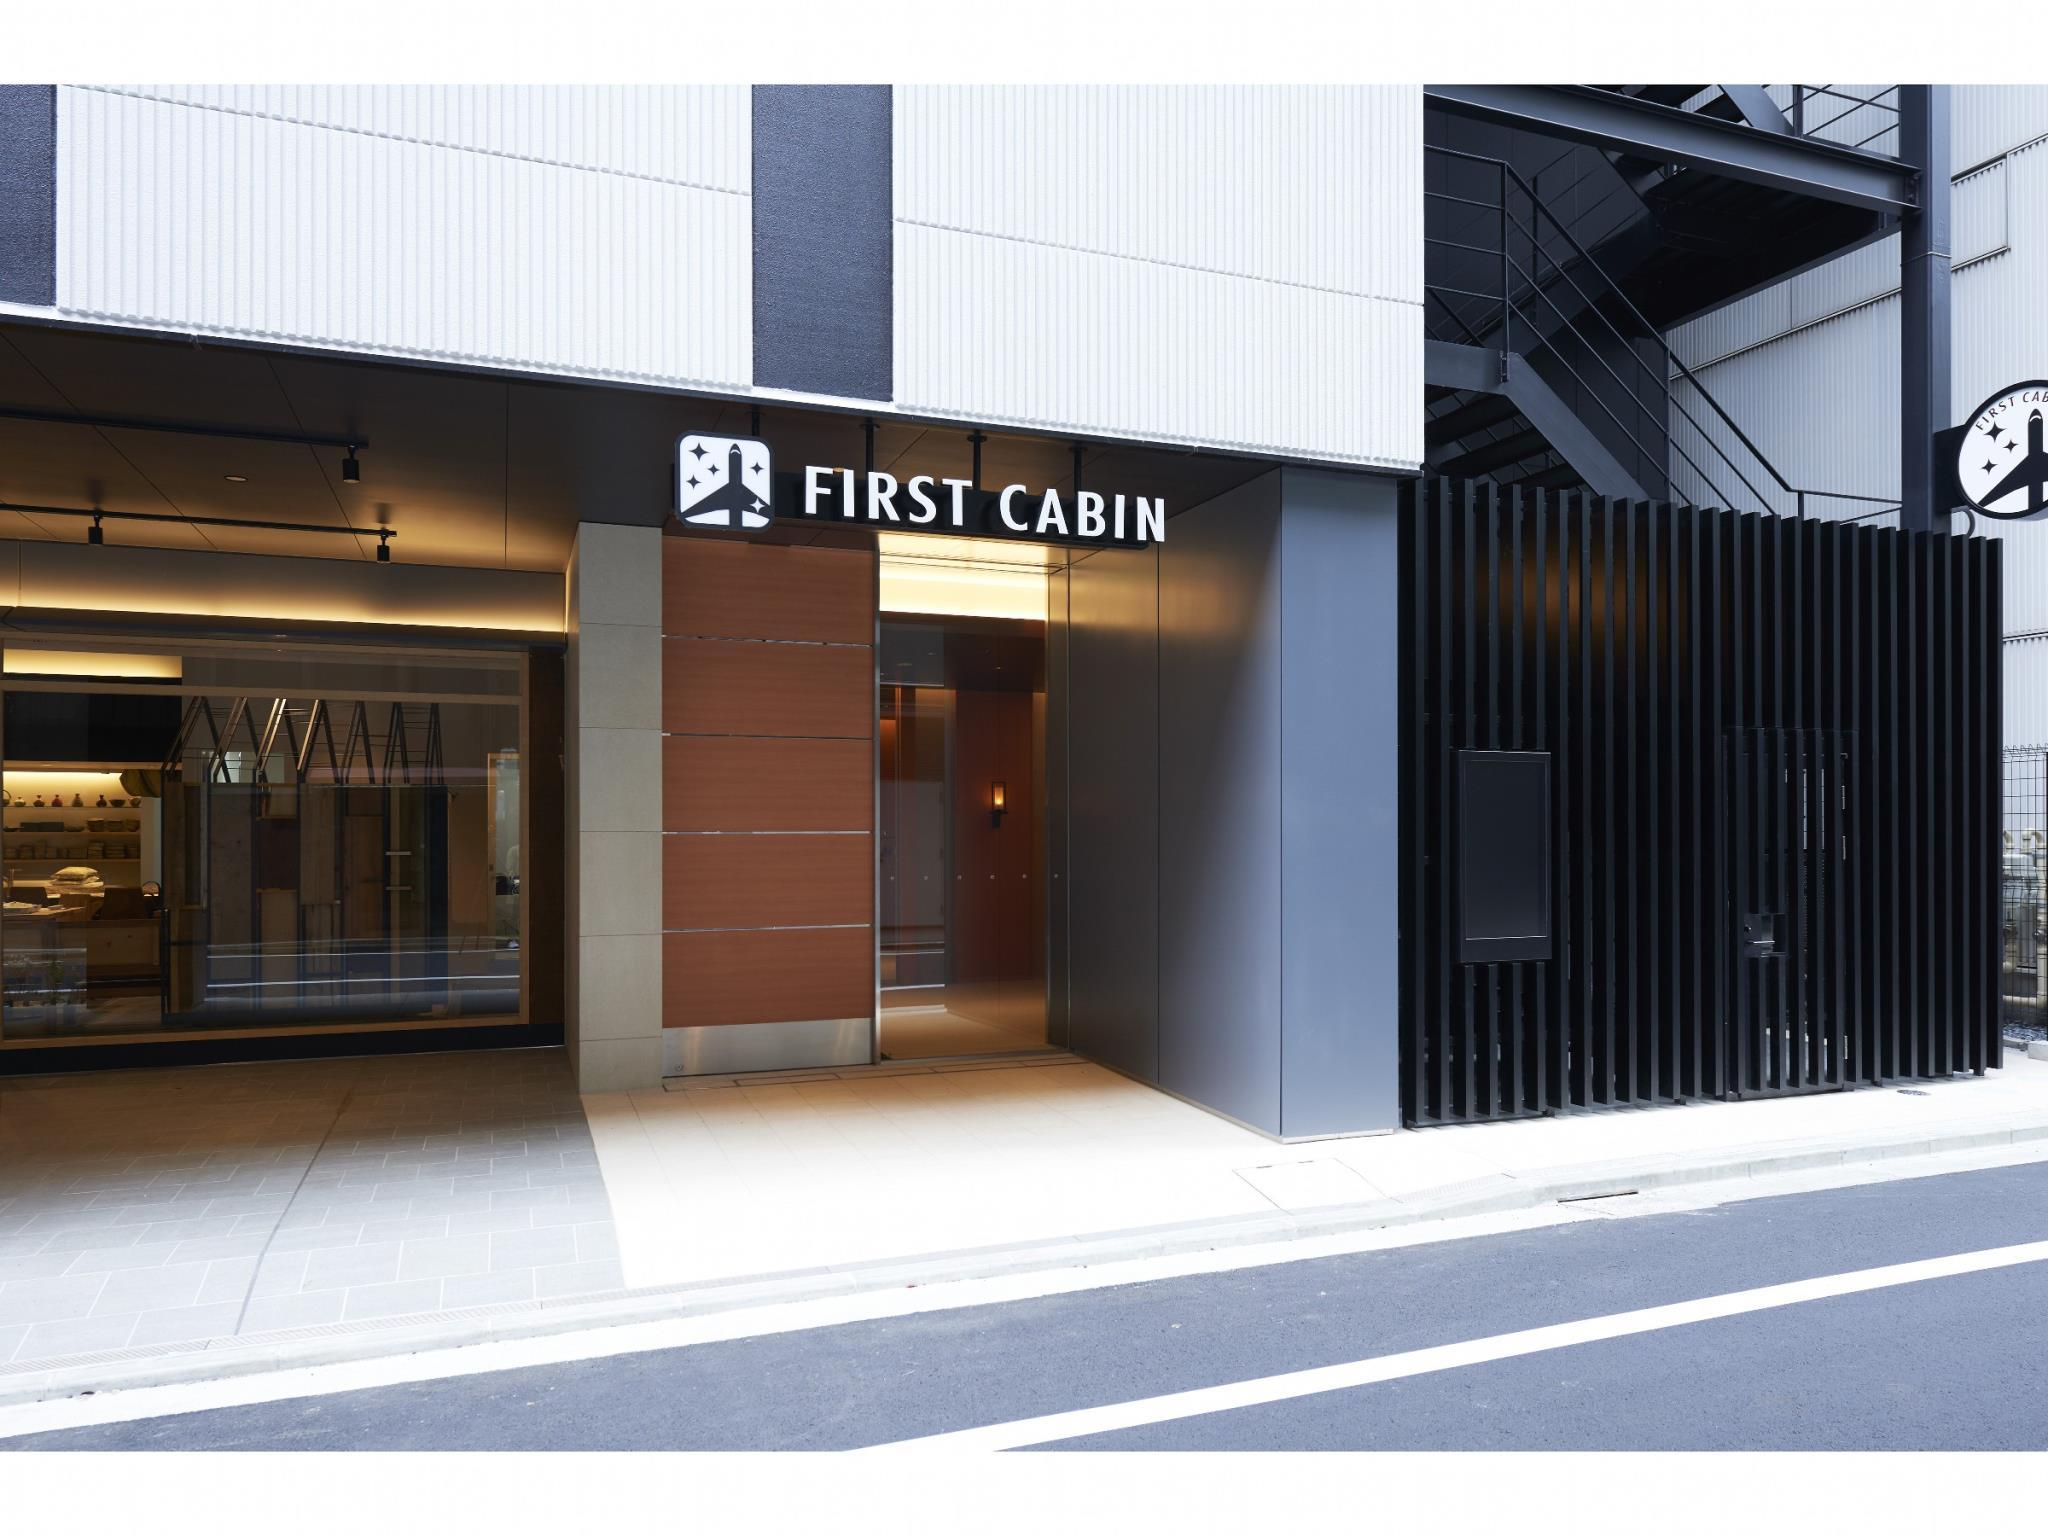 More About First Cabin Kyobashi